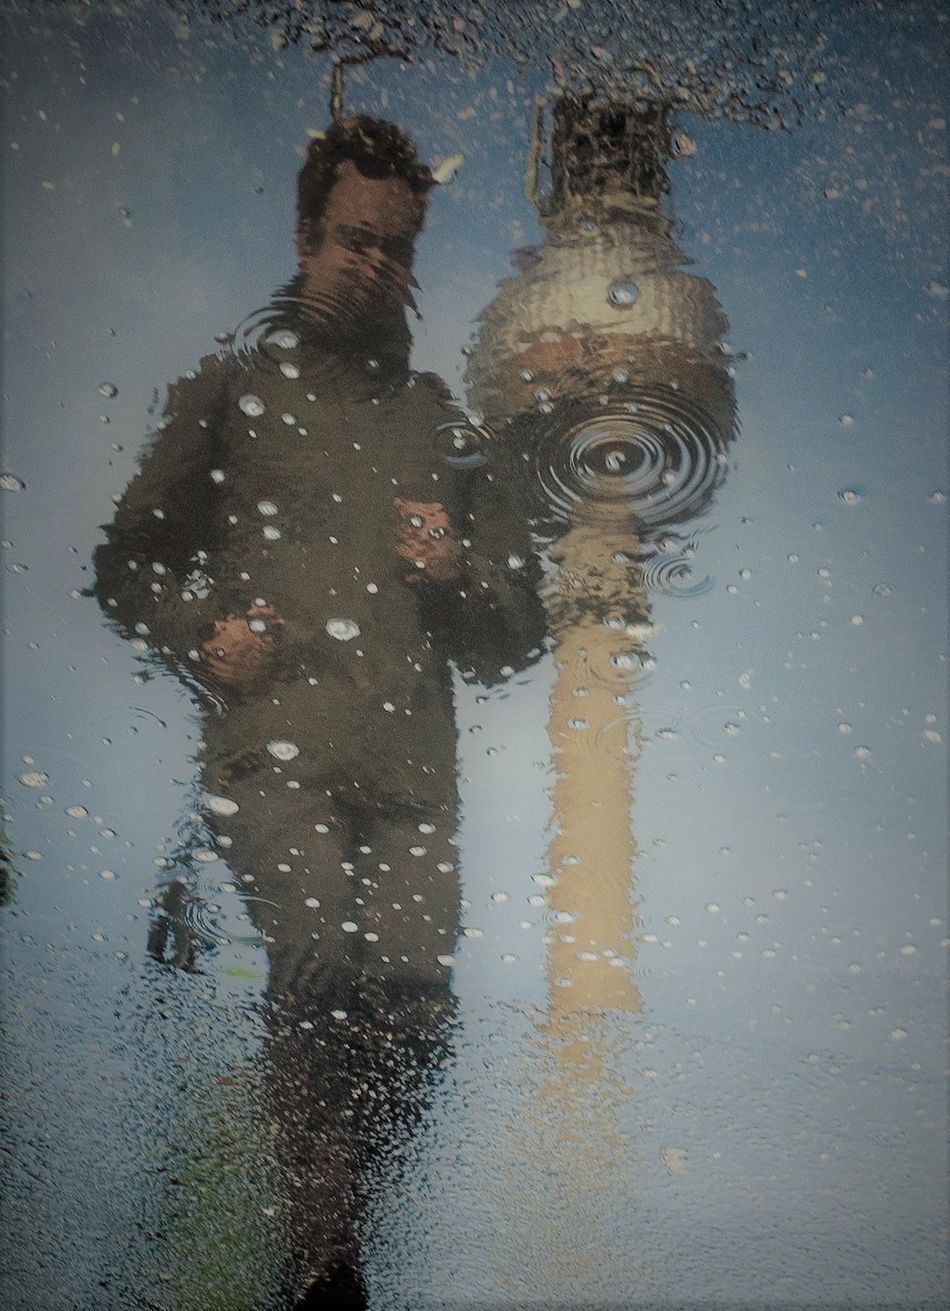 Day Men One Man Only One Person Outdoors Puddle Rain Raindrops Real People Reflection Road Streetphotography Television Tower Water Wet